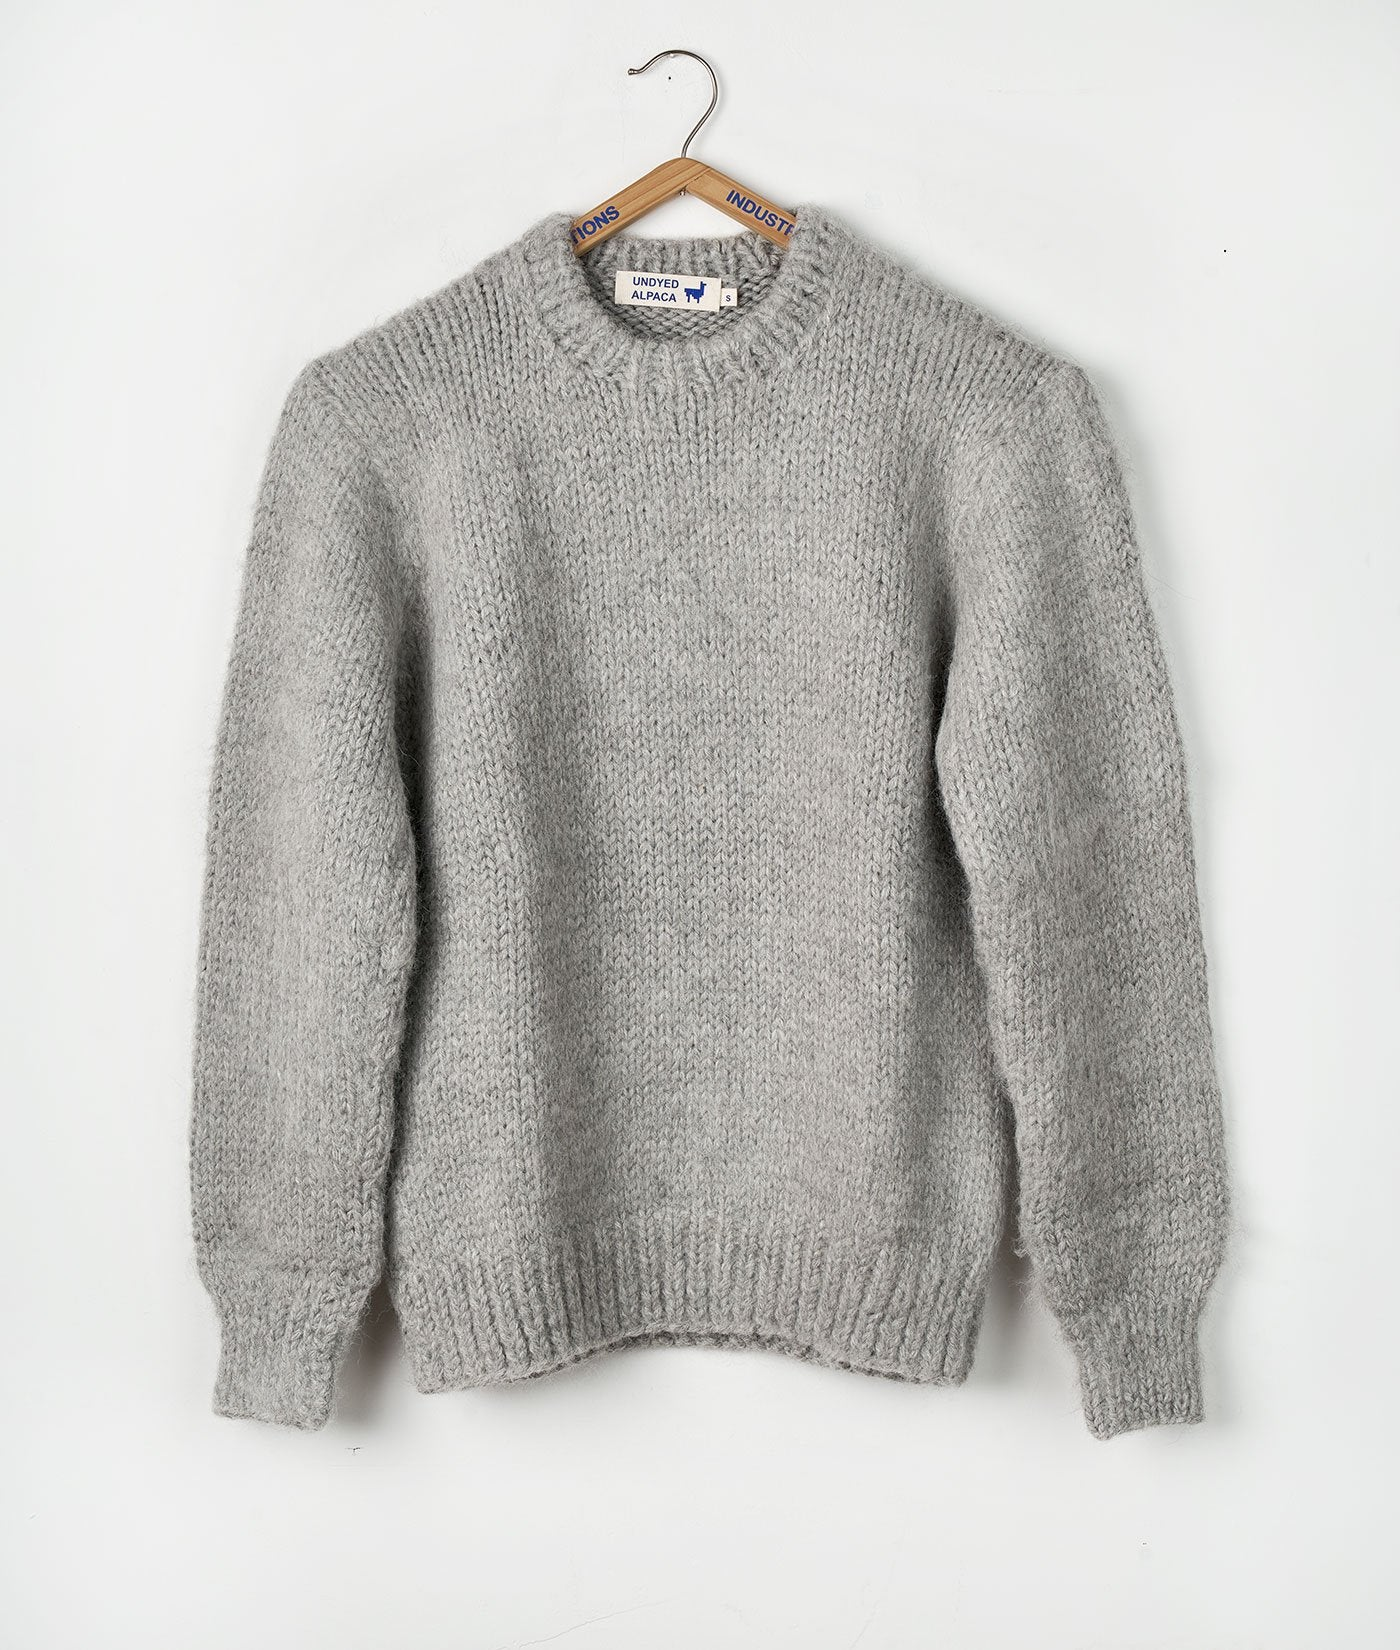 Industry of All Nations Topo Crewneck Knit Sweater